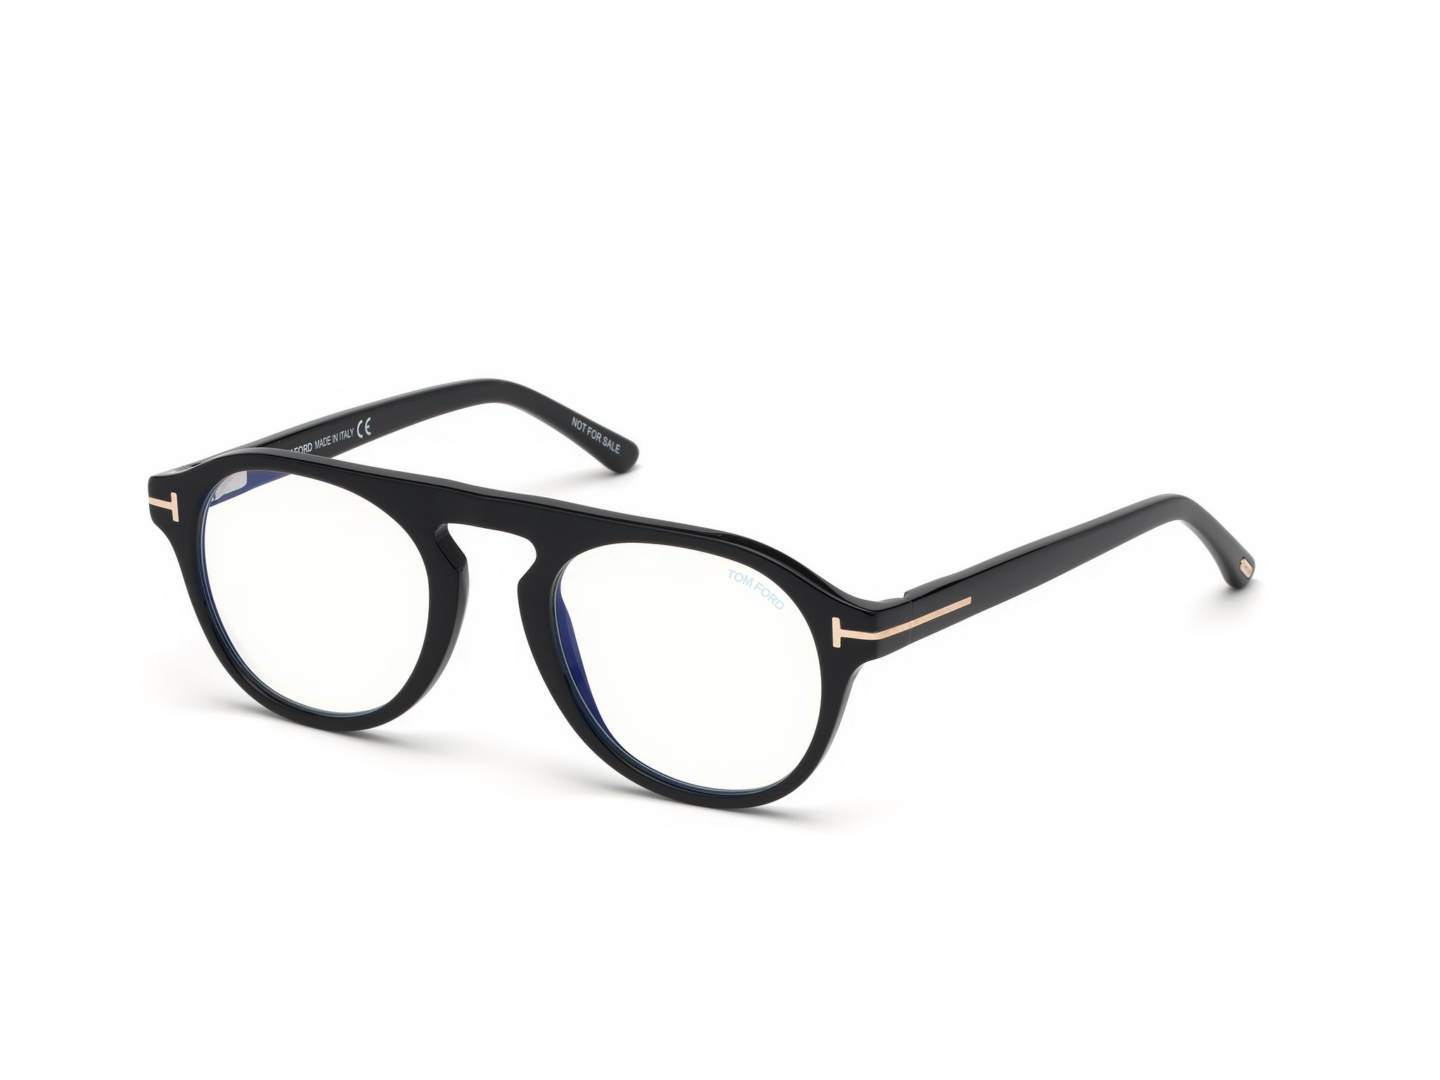 Tom Ford - Occhiale da Vista Uomo con Clip On da Sole, Matte Black/ Dark Blue Shaded FT5533-B  01V  C49